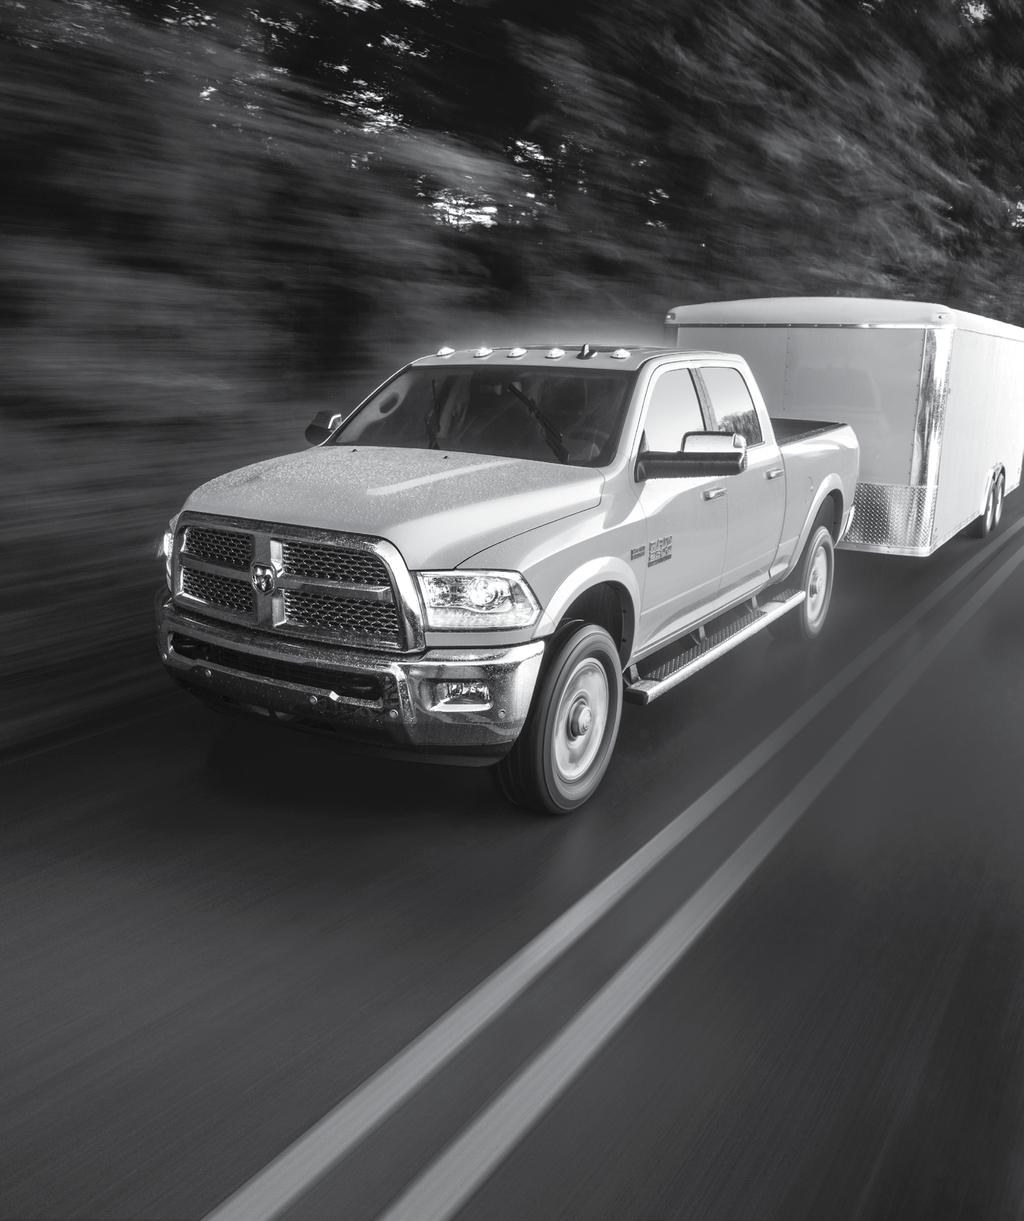 AN OPEN-AND-SHUT CASE FOR SAFETY & SECURITY. } Air Bag9 Technology Ram surrounds you with protection, including multistage front, supplemental front-seat side-mounted, and side-curtain air bags.